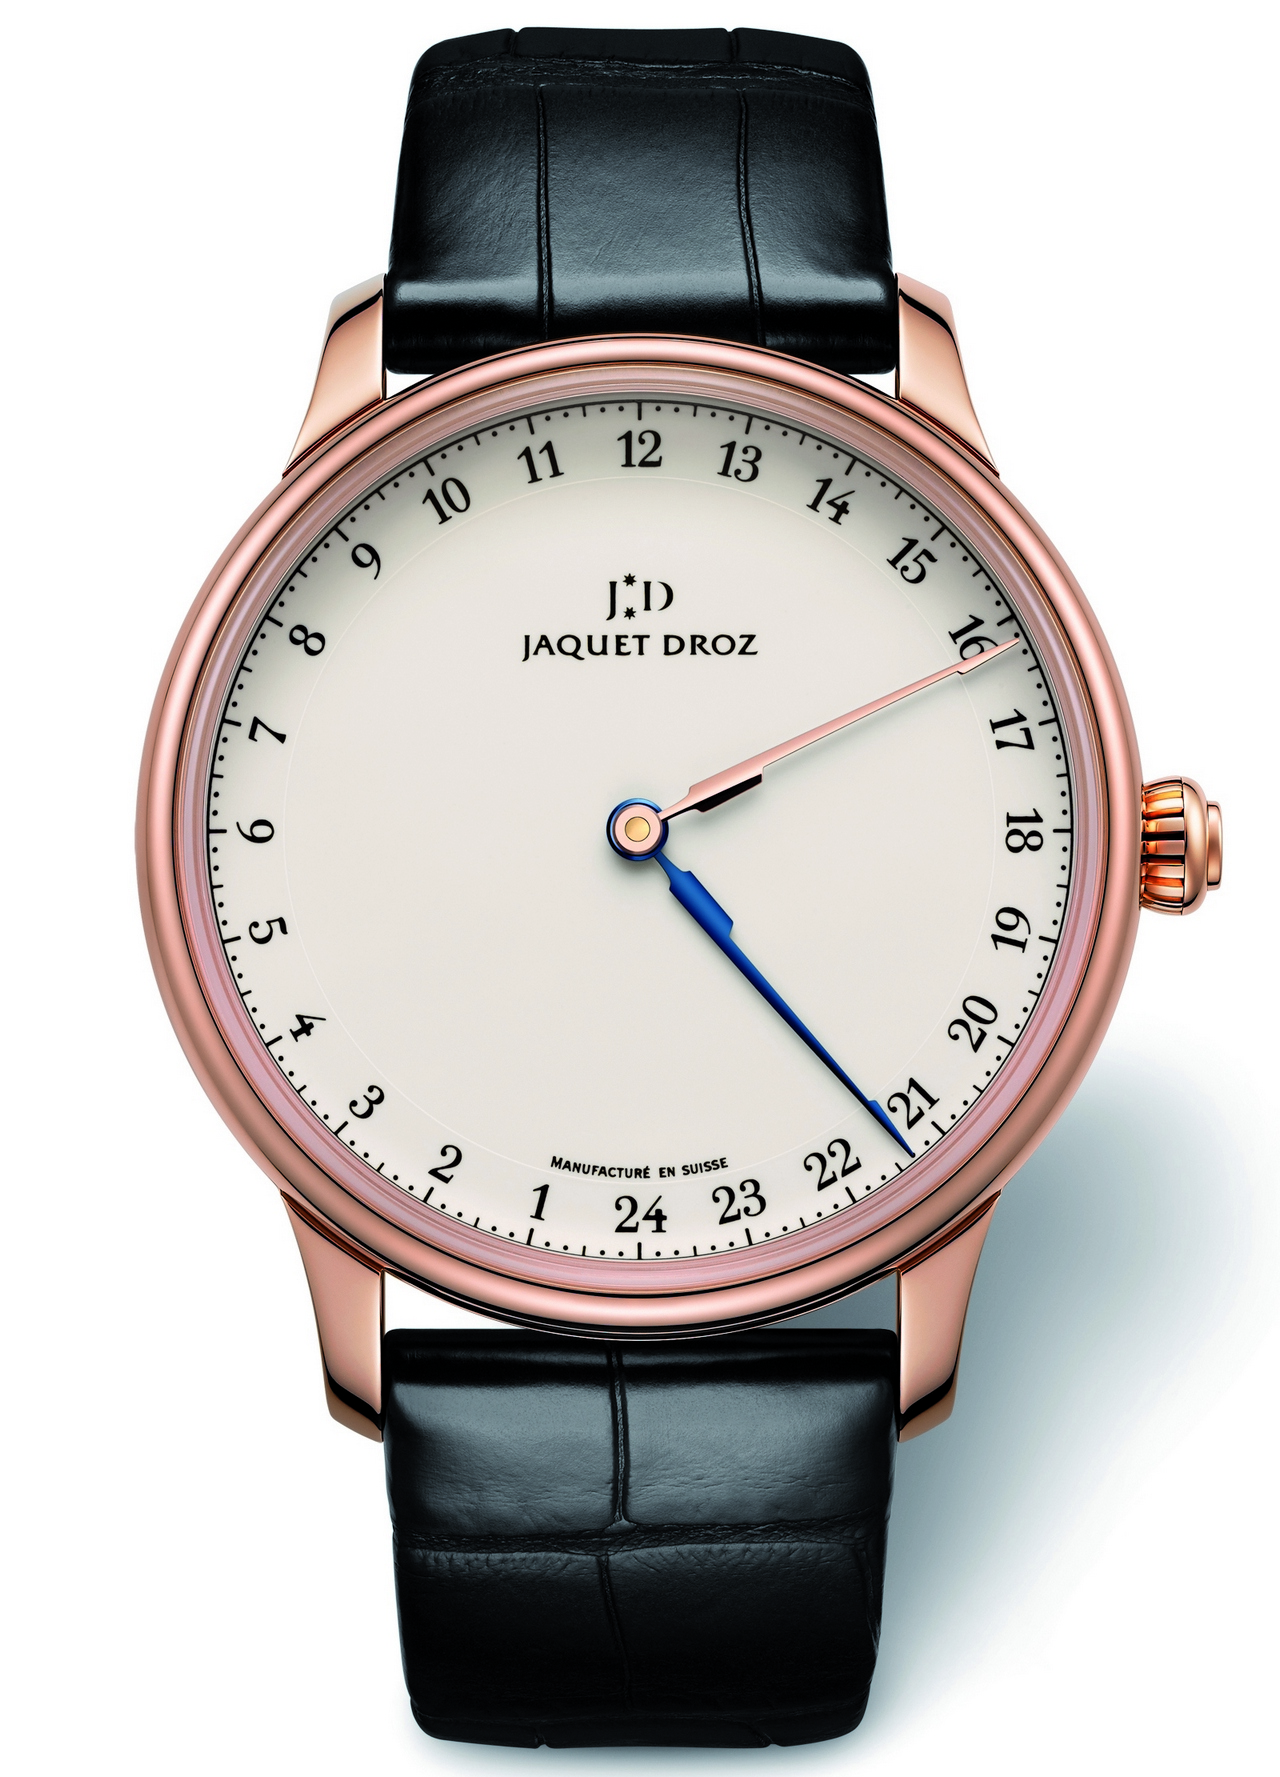 baselworld-2013-jaquet-droz-grande-heure-gmt_0-100_4